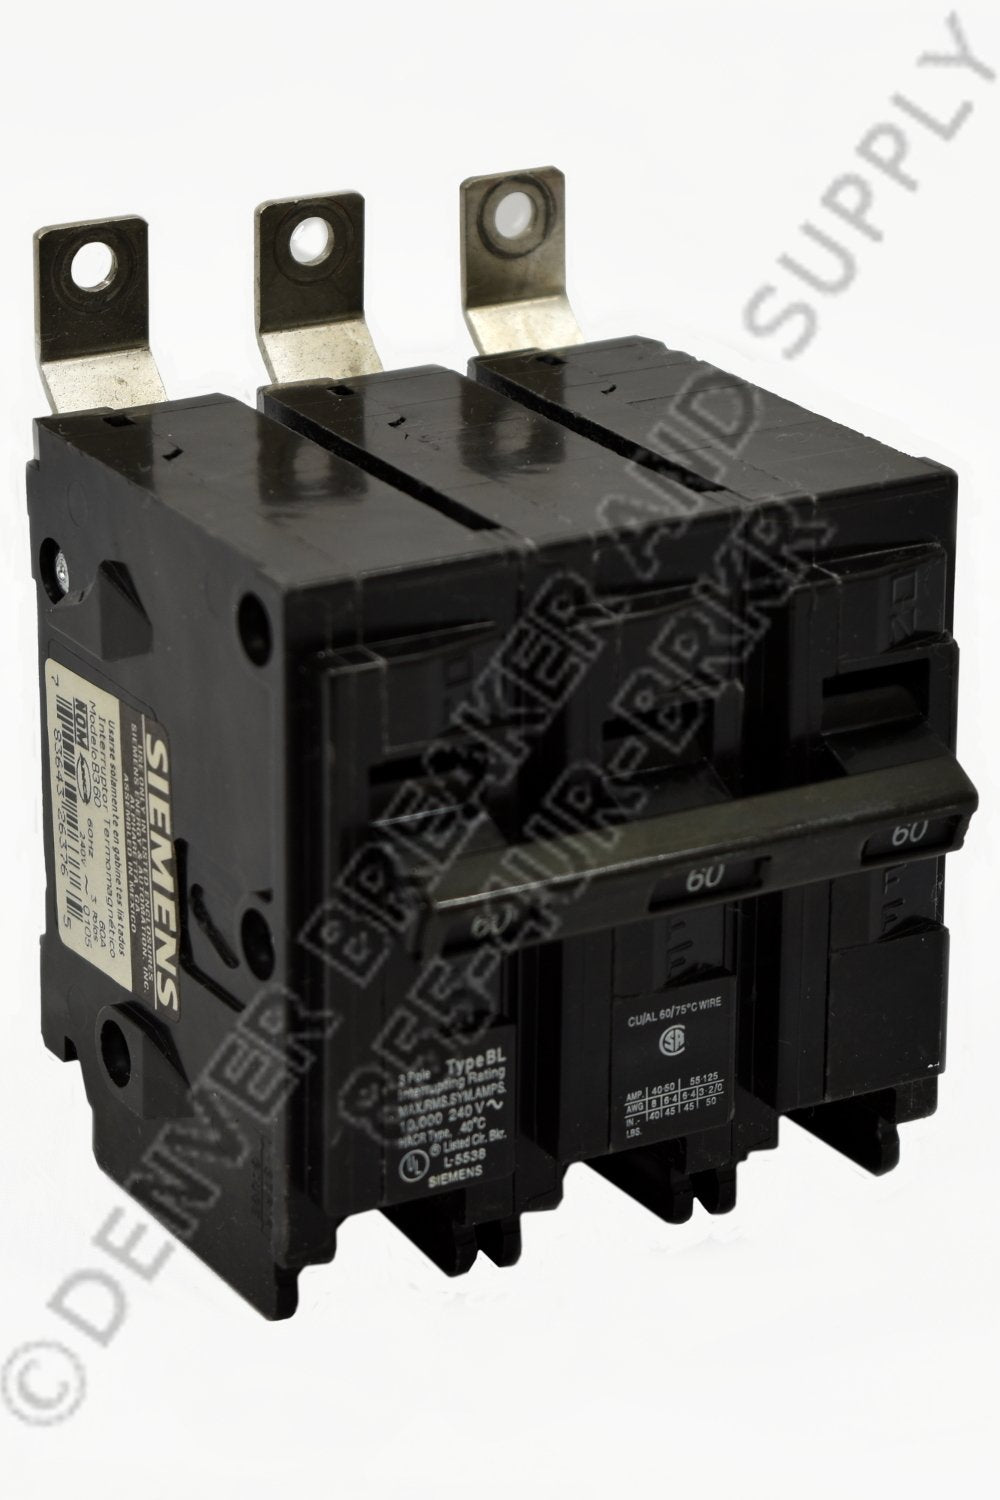 ITE BL330 Circuit Breakers